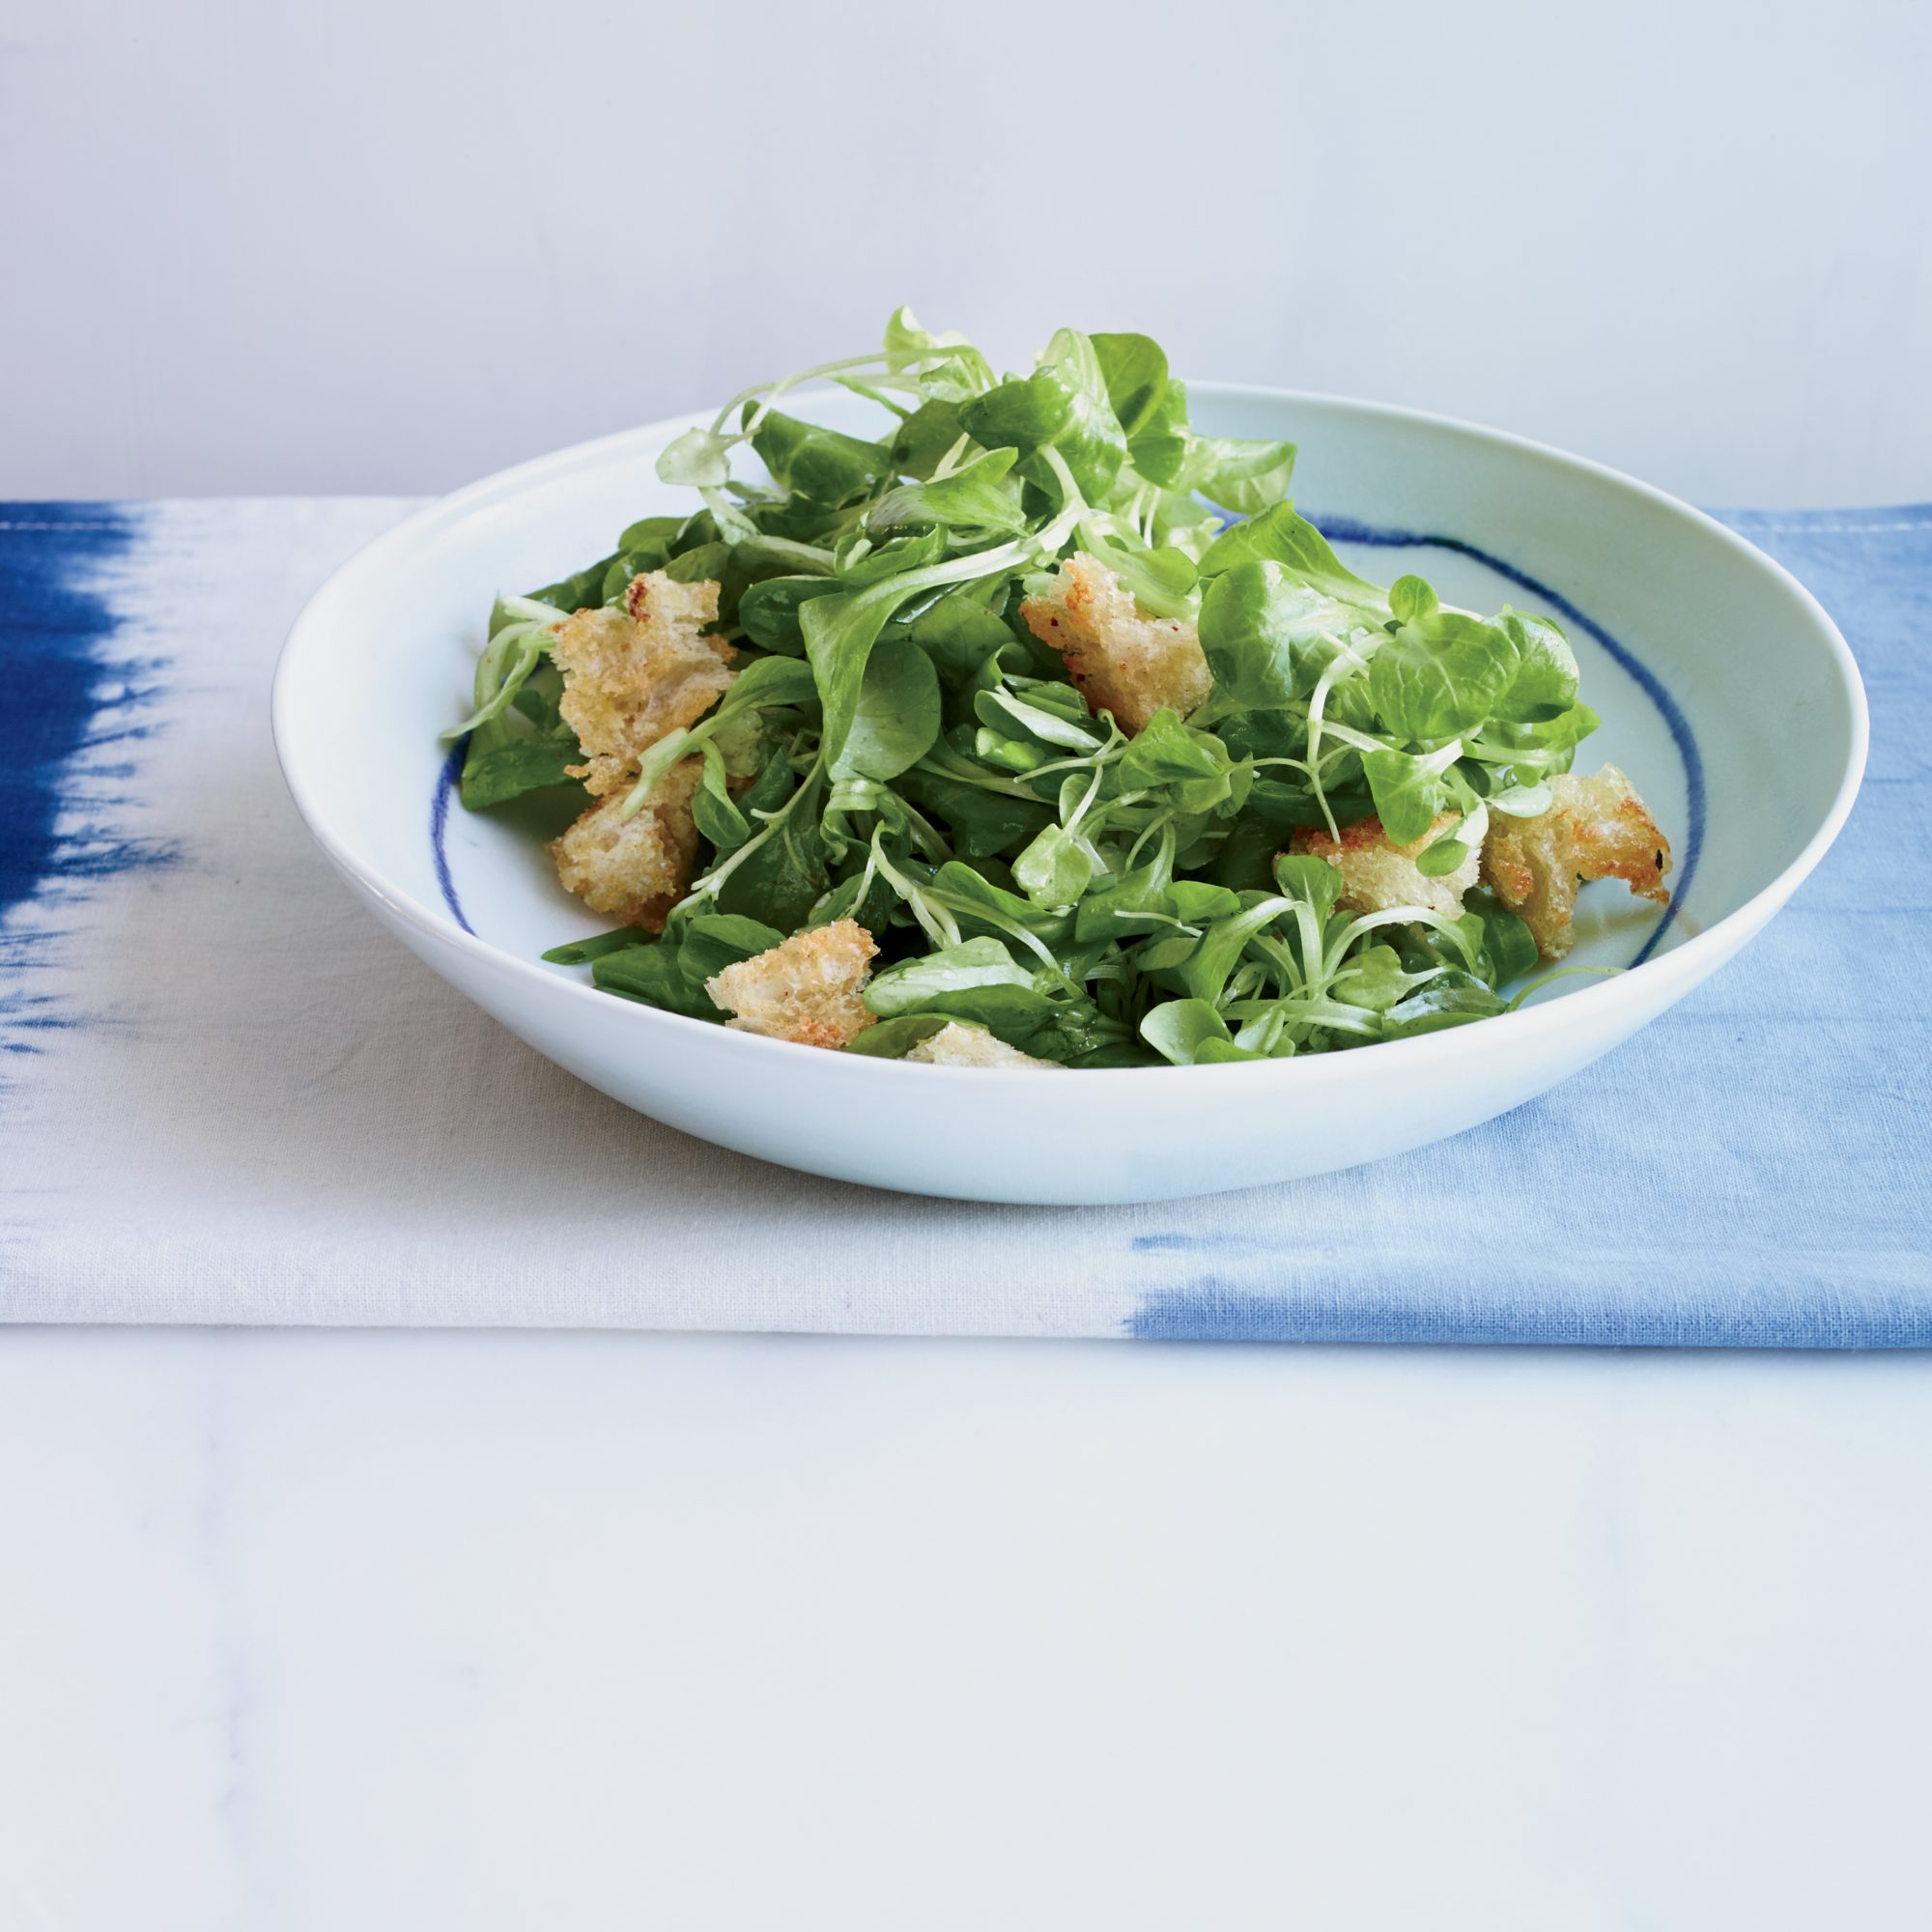 201406-r-mache-salad-with-curry-vinaigrette.jpg